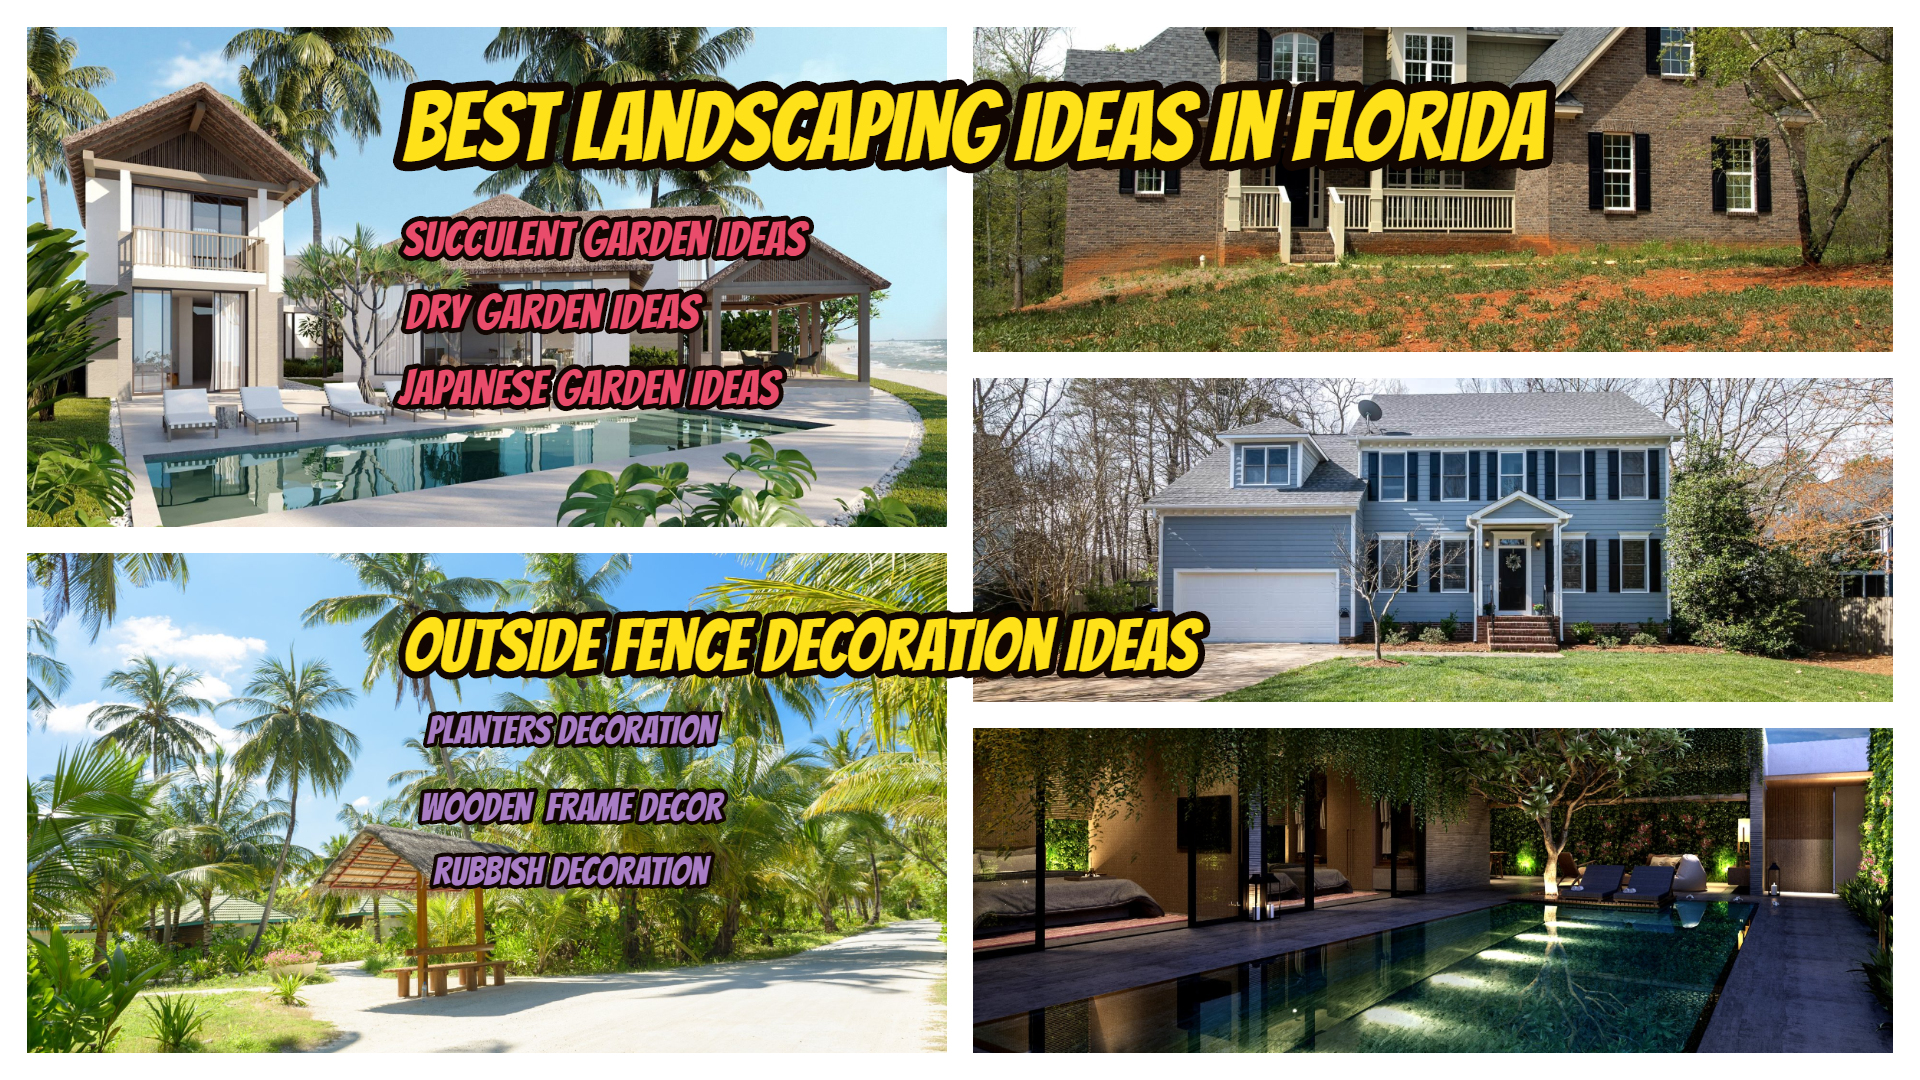 landscaping ideas in florida